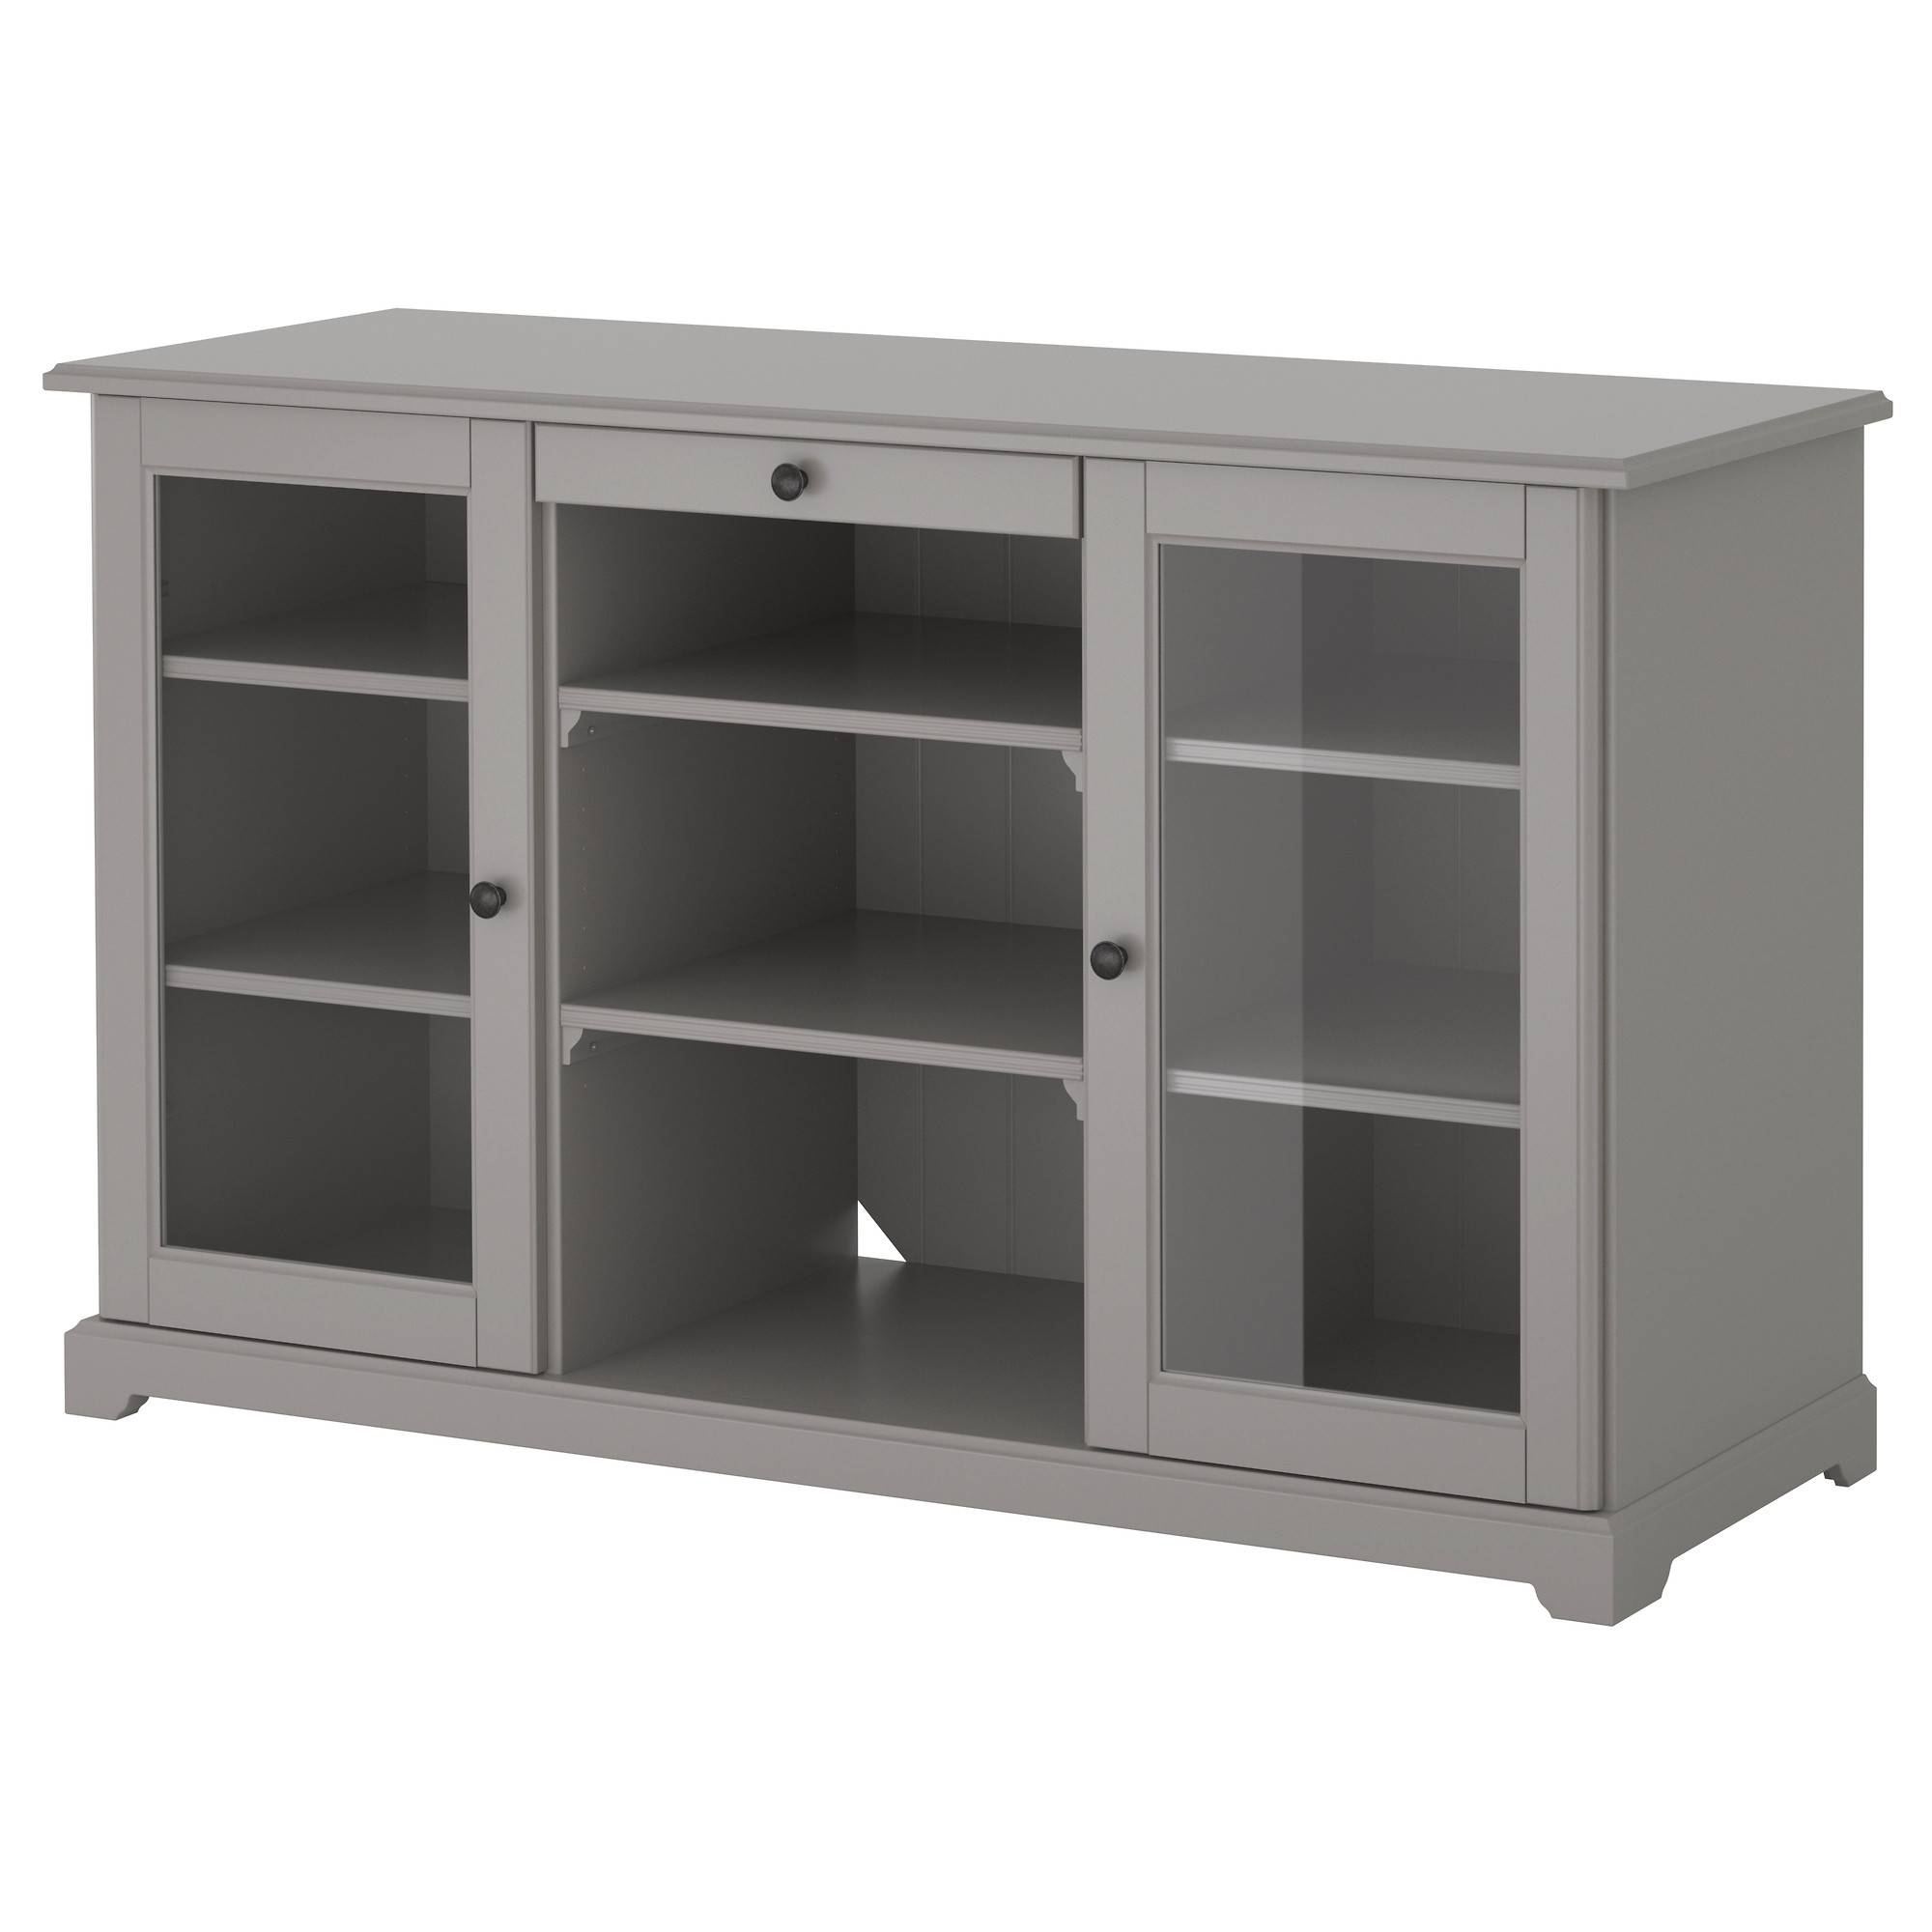 Liatorp Sideboard - Gray - Ikea with regard to Liatorp Sideboards (Image 8 of 15)